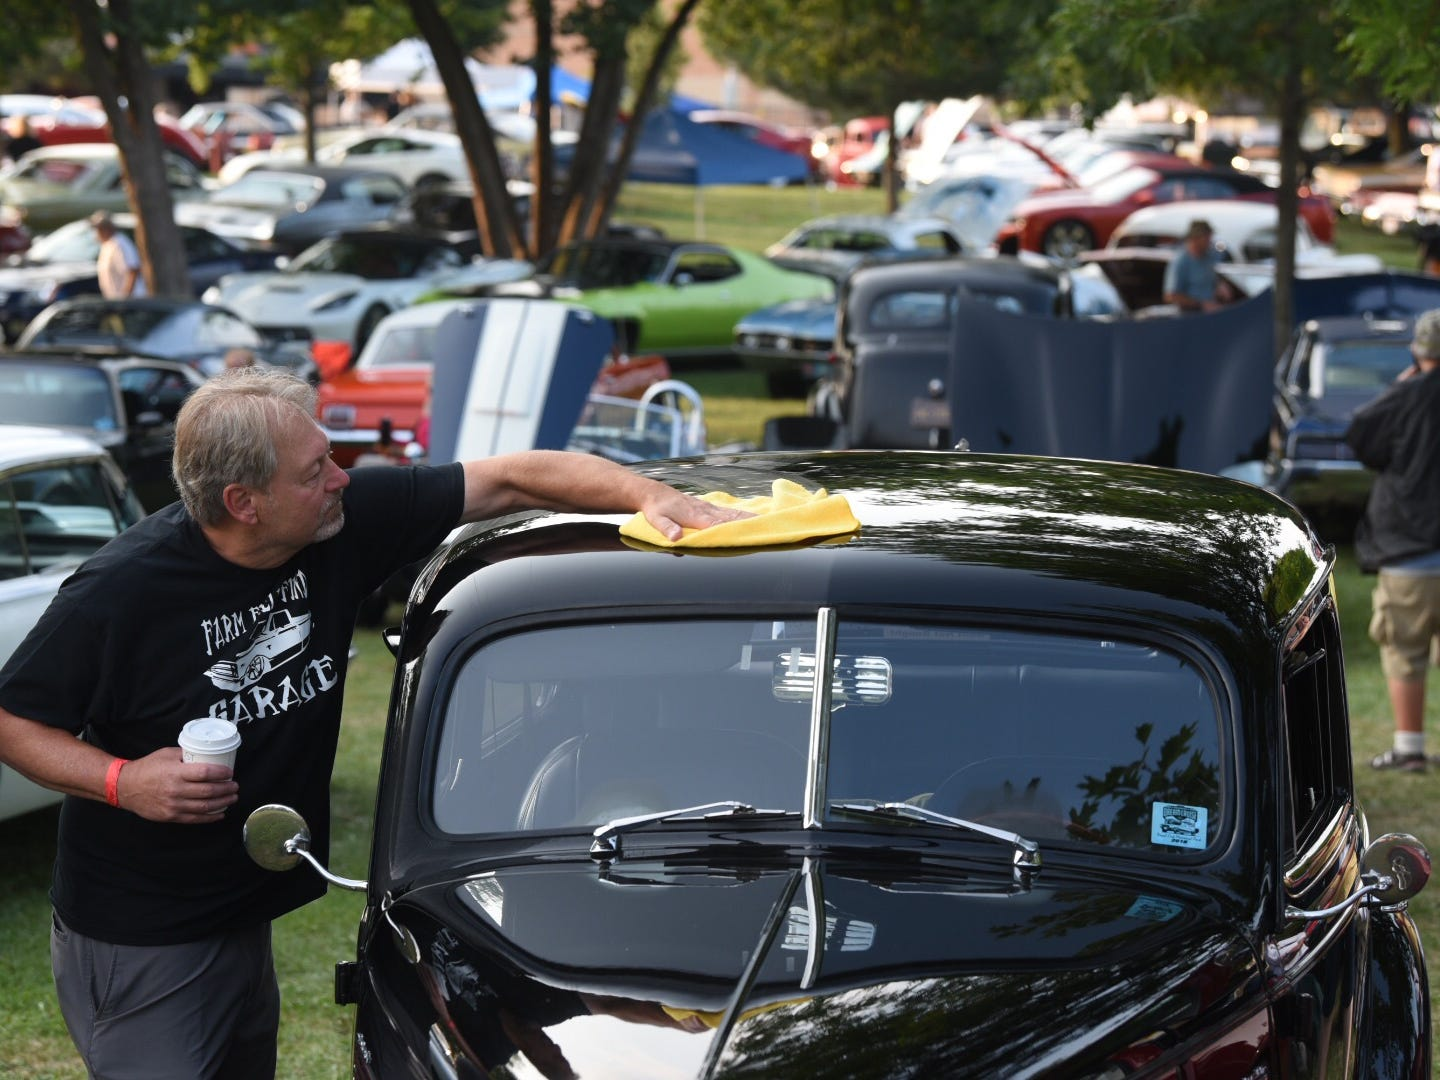 Gary Zacharias, of Hartland, Wisconsin, polishes a 1939 Chevy for the Woodward Dream Cruise.